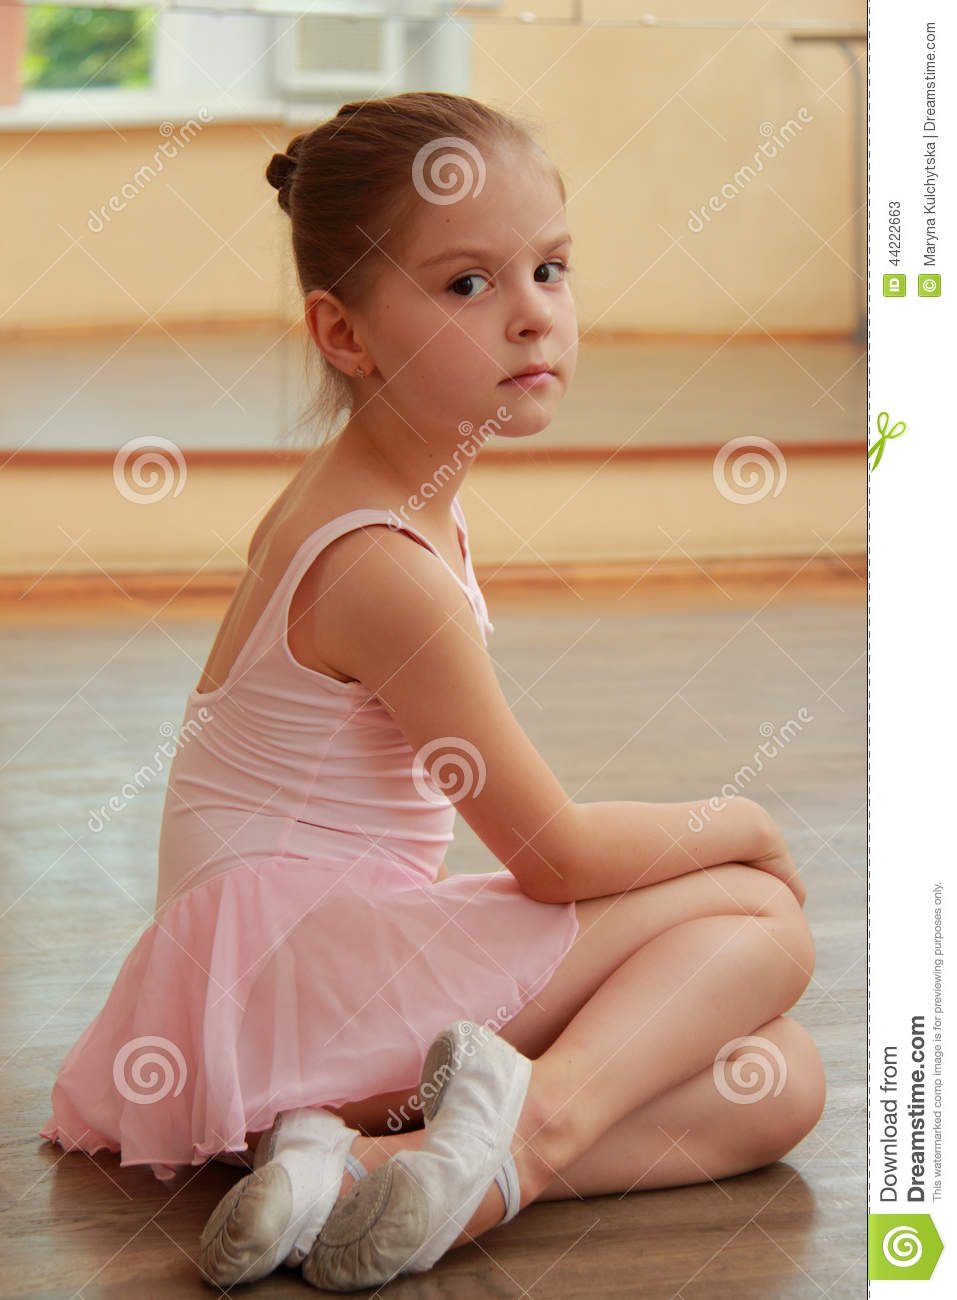 Young ballerina stock image. Image of happiness, females ...